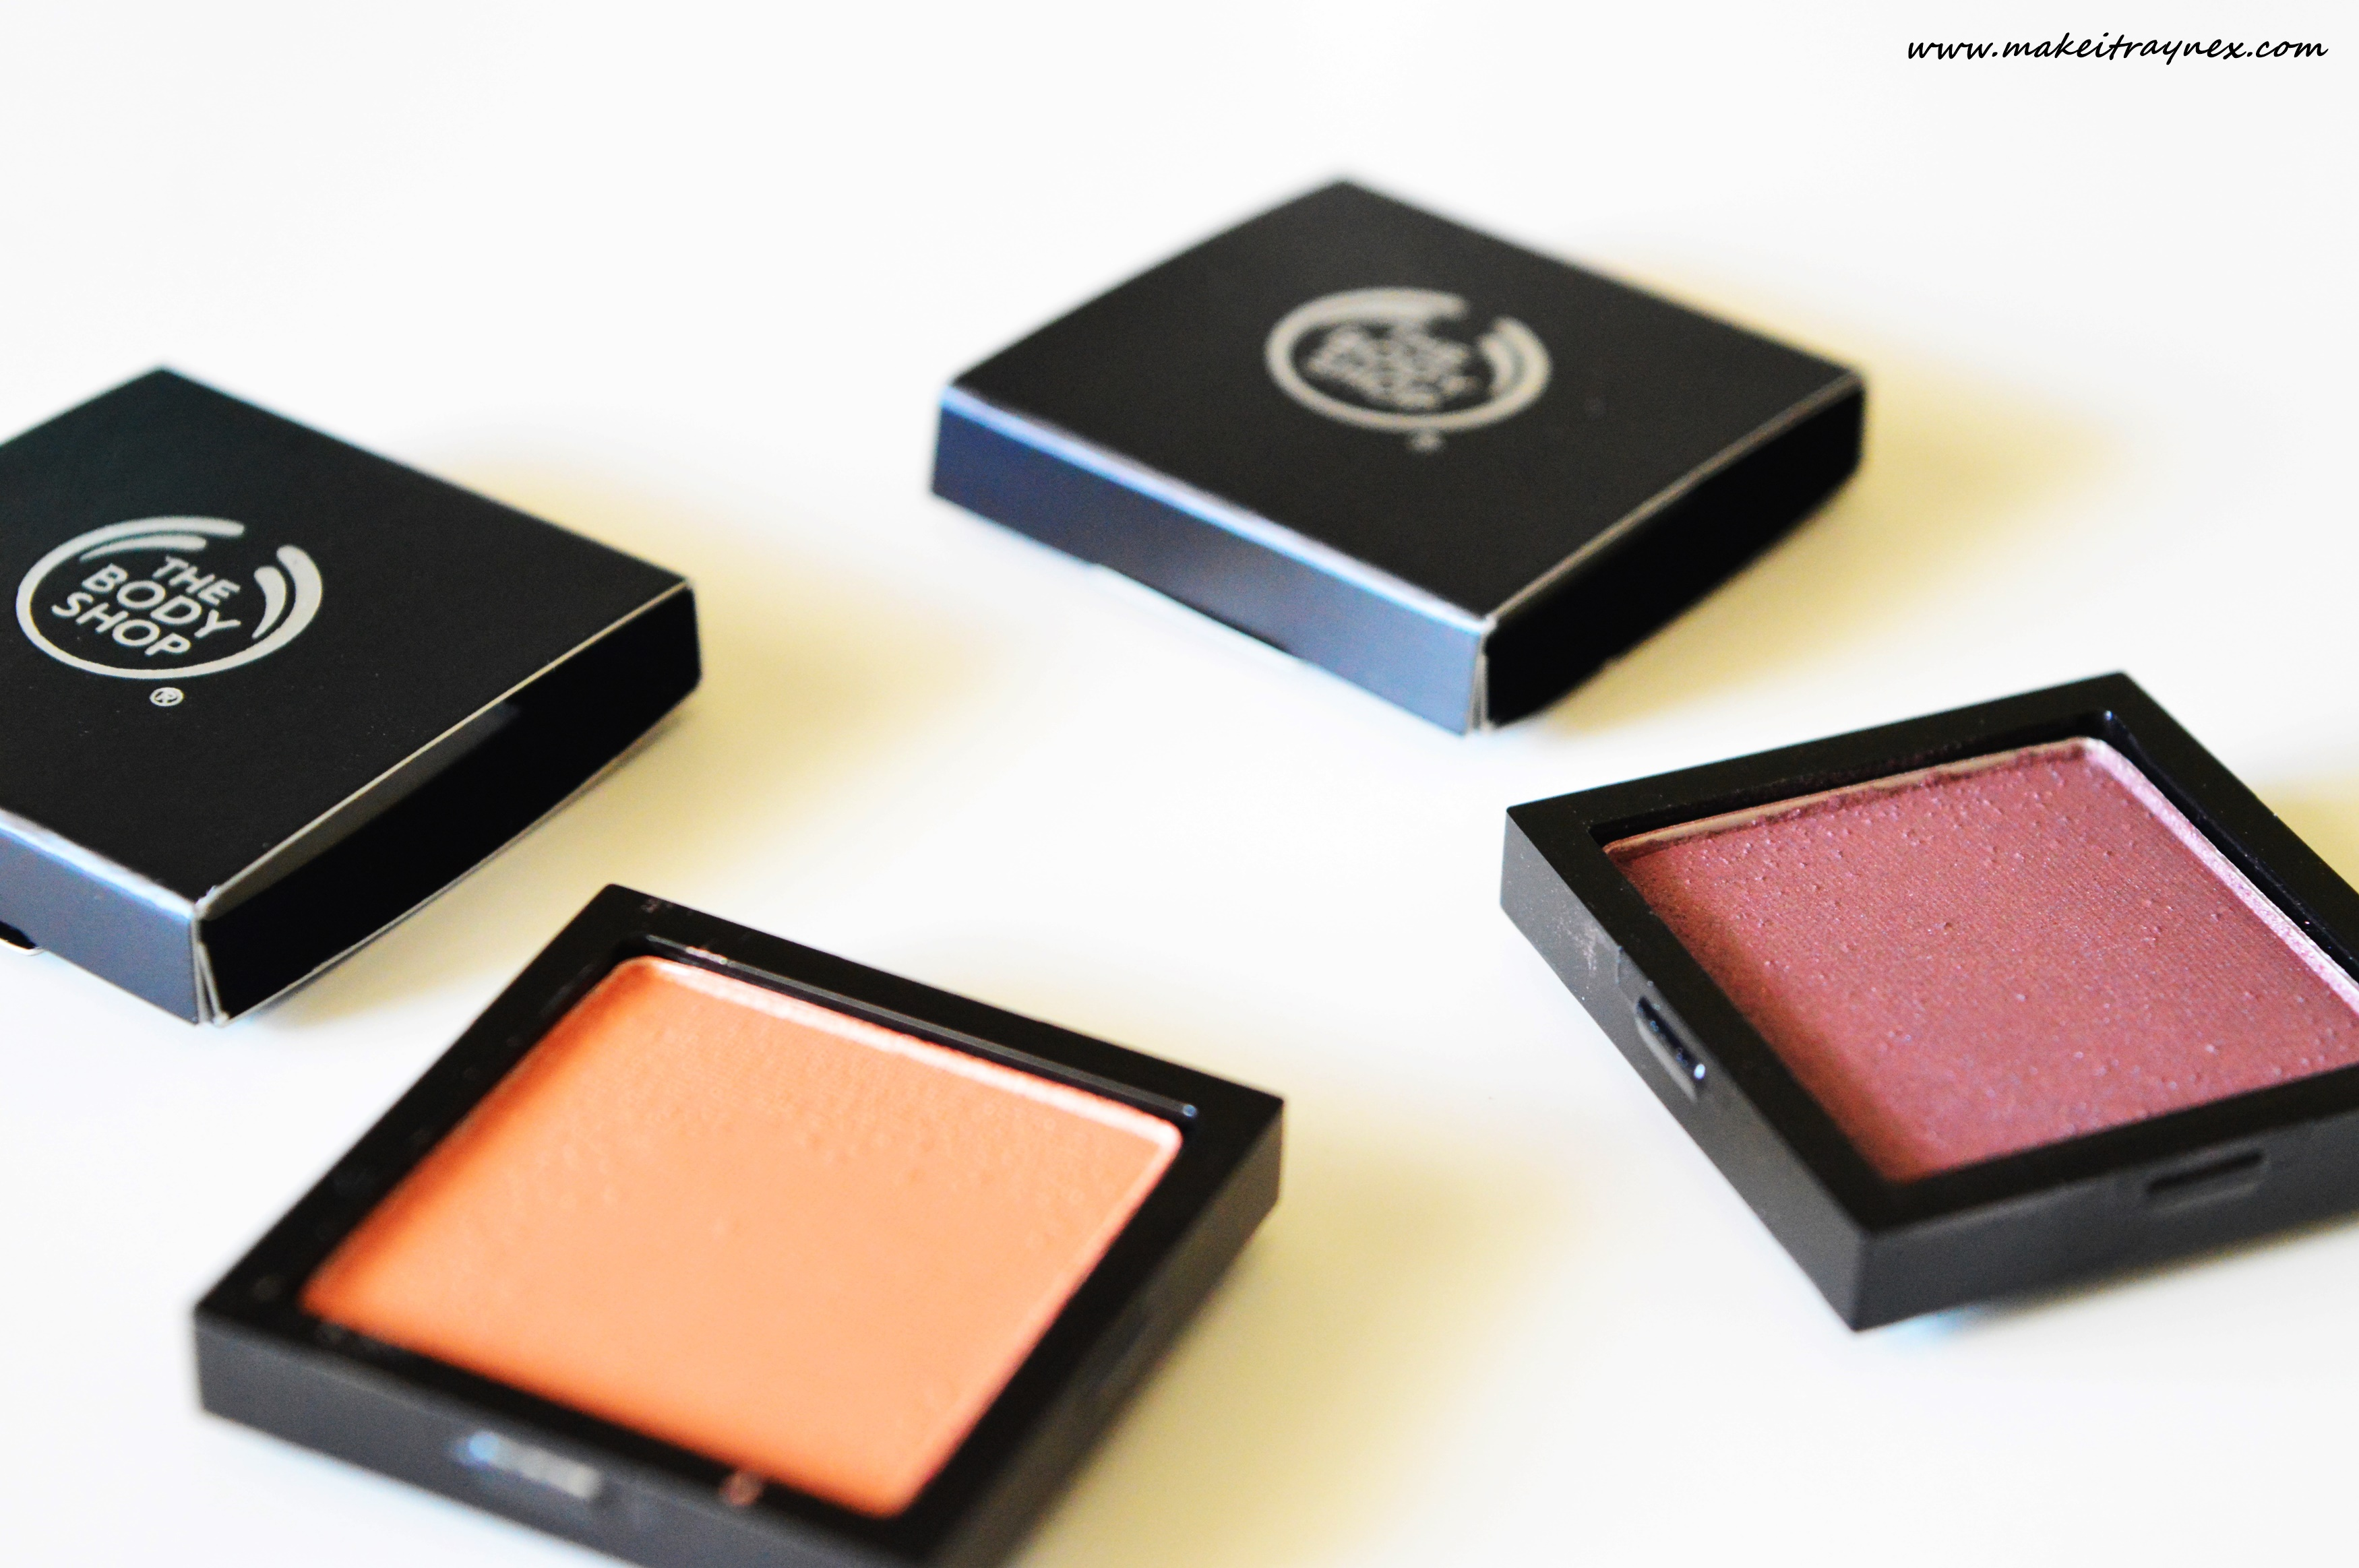 The Body Shop has thirty eye-shadow shades available! {REVIEW}